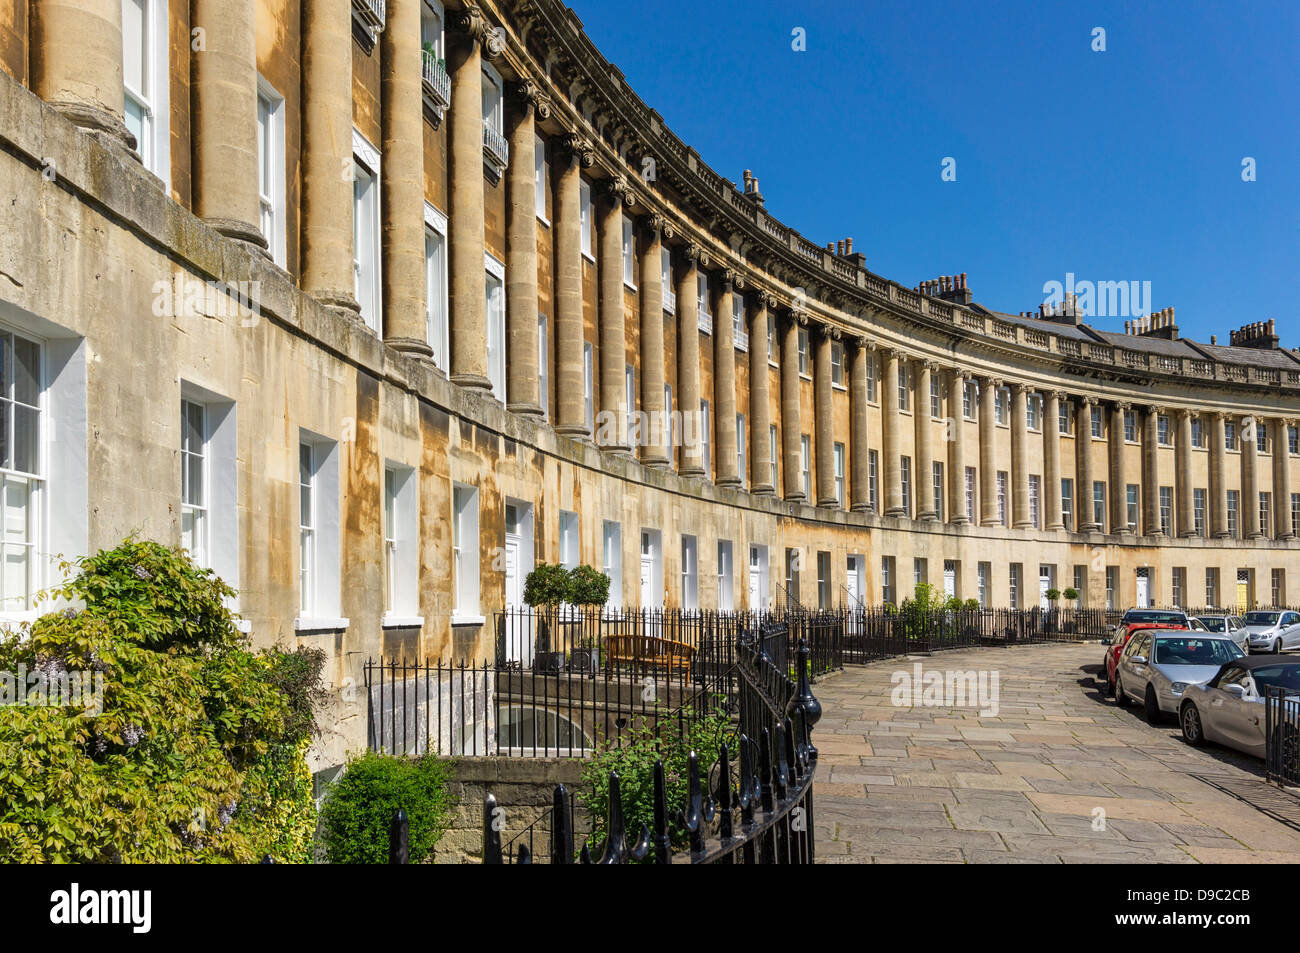 Bath, Angleterre - The Royal Crescent, Bath, Somerset, England, UK Photo Stock